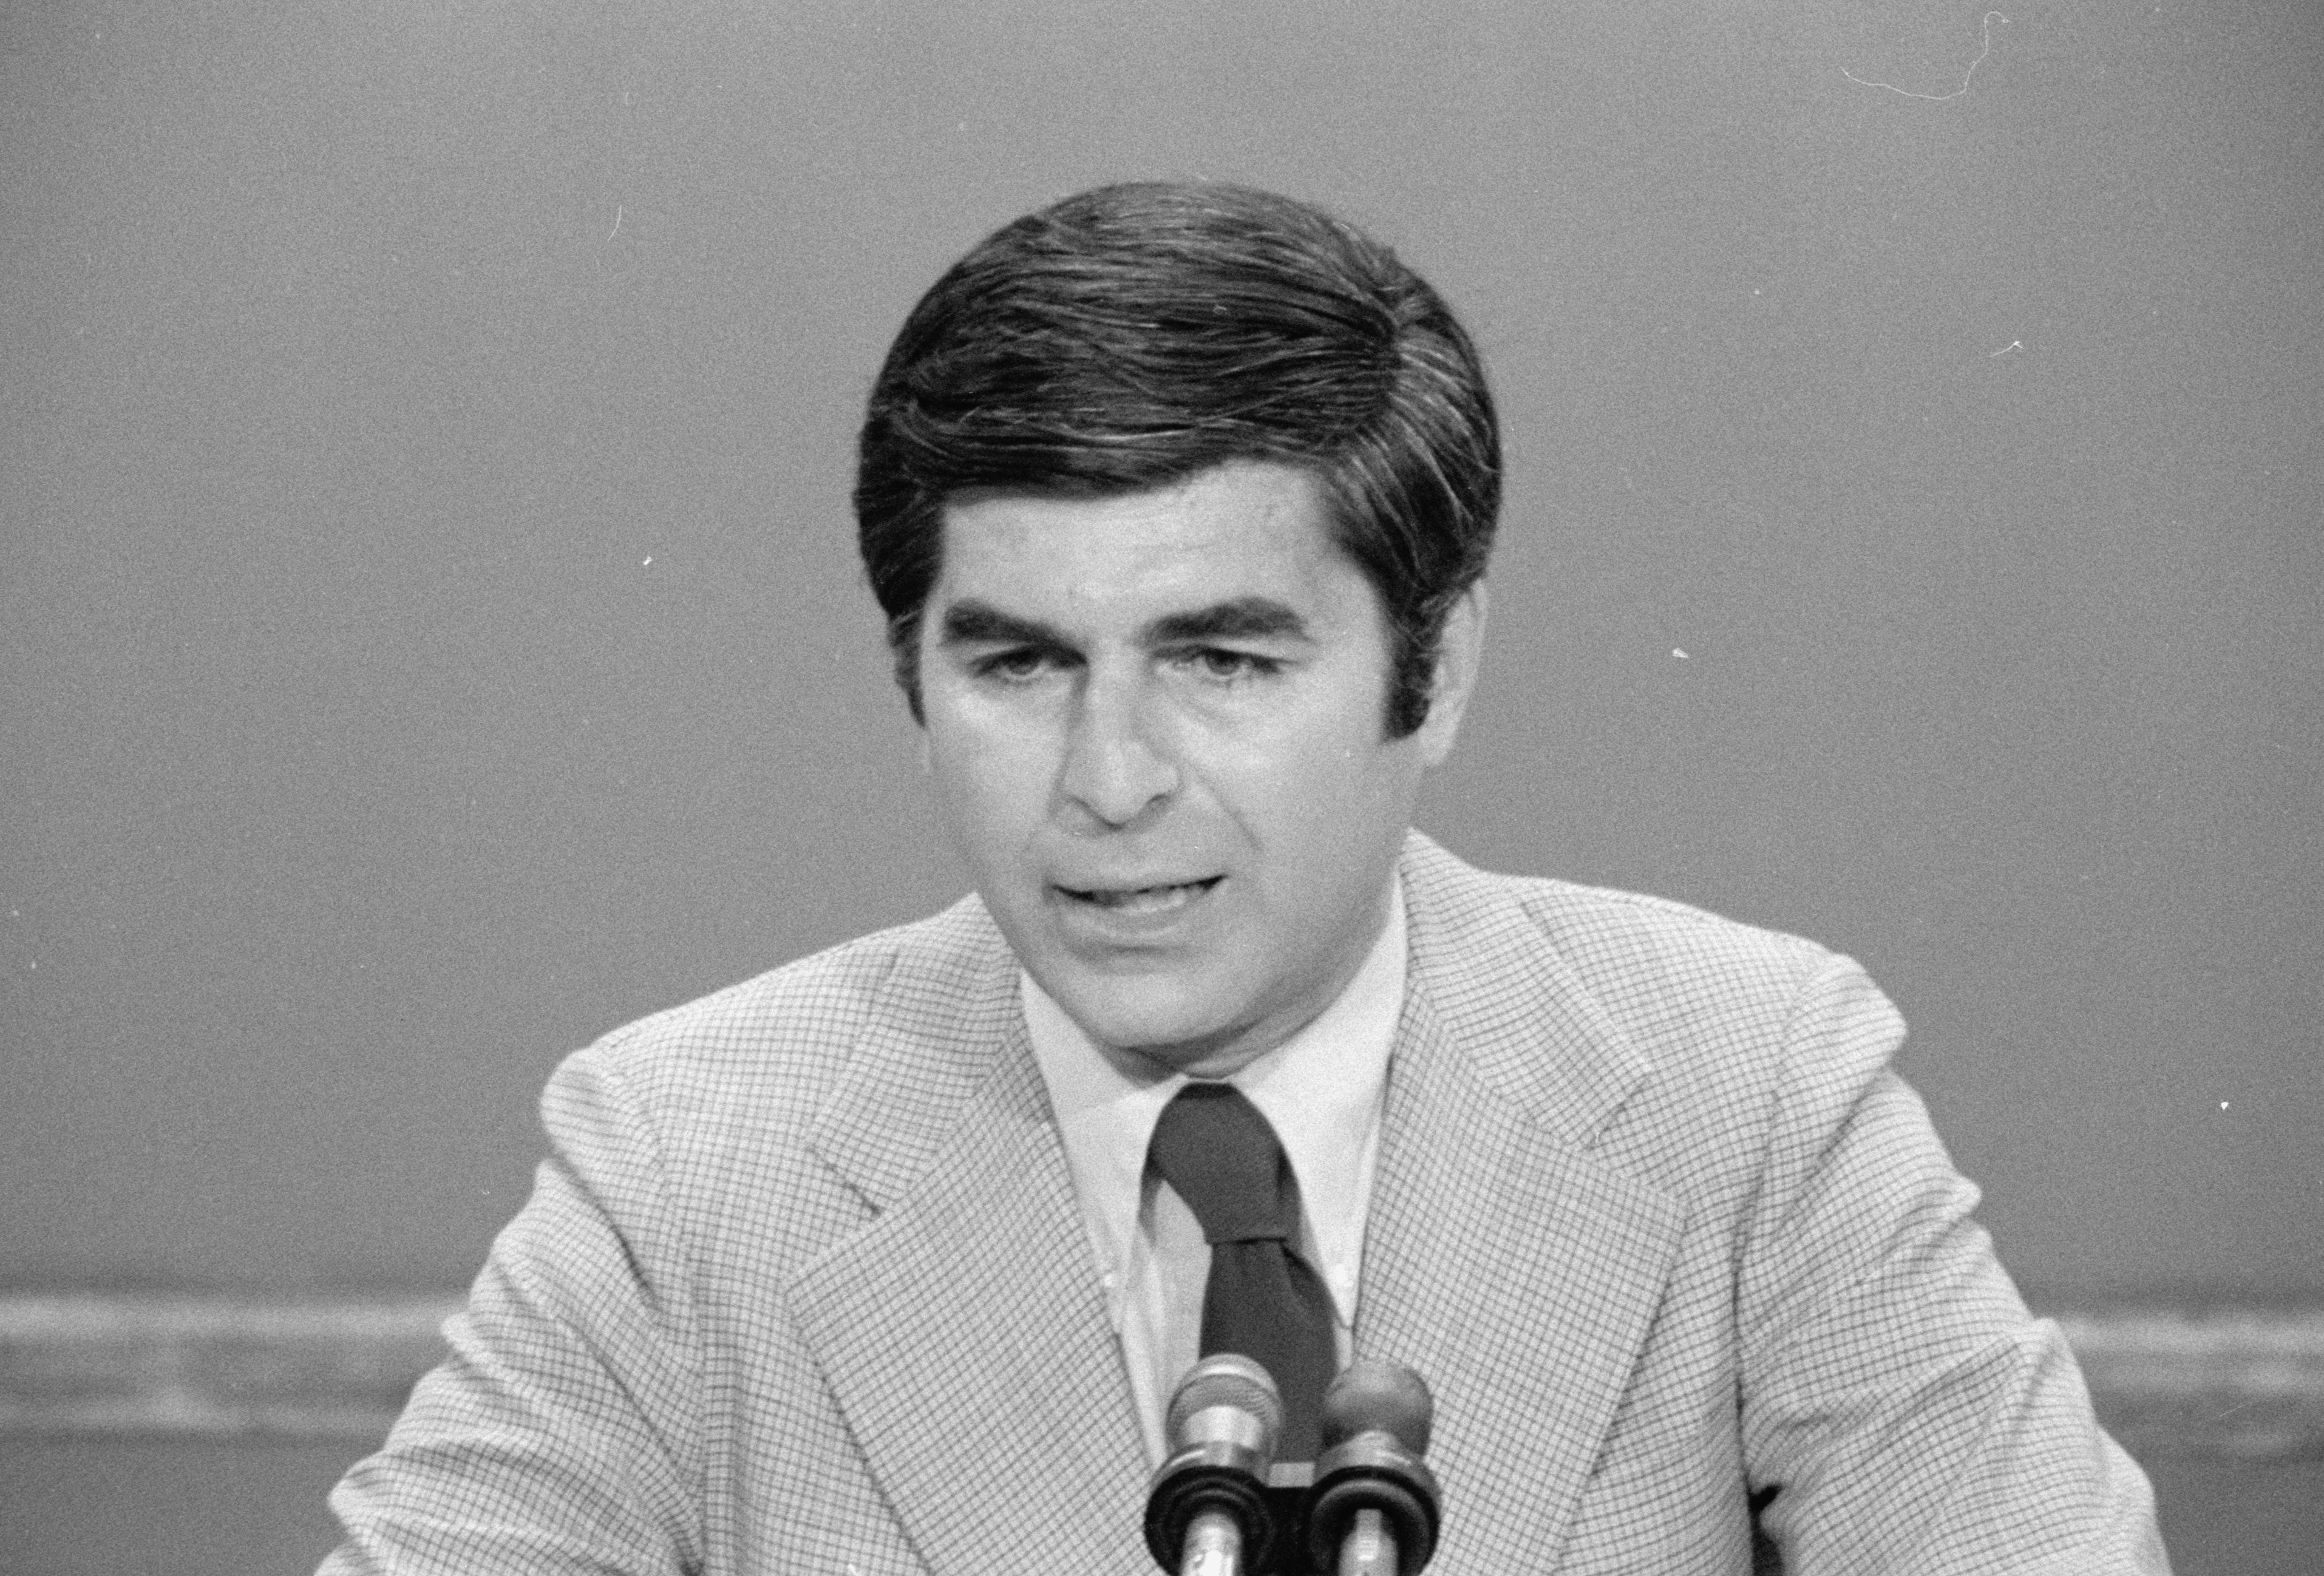 Governor of Massachusetts Michael Dukakis at the Democratic Convention in New York City, U.S. in 1976. Library of Congress/Thomas J. O'Halloran/Handout